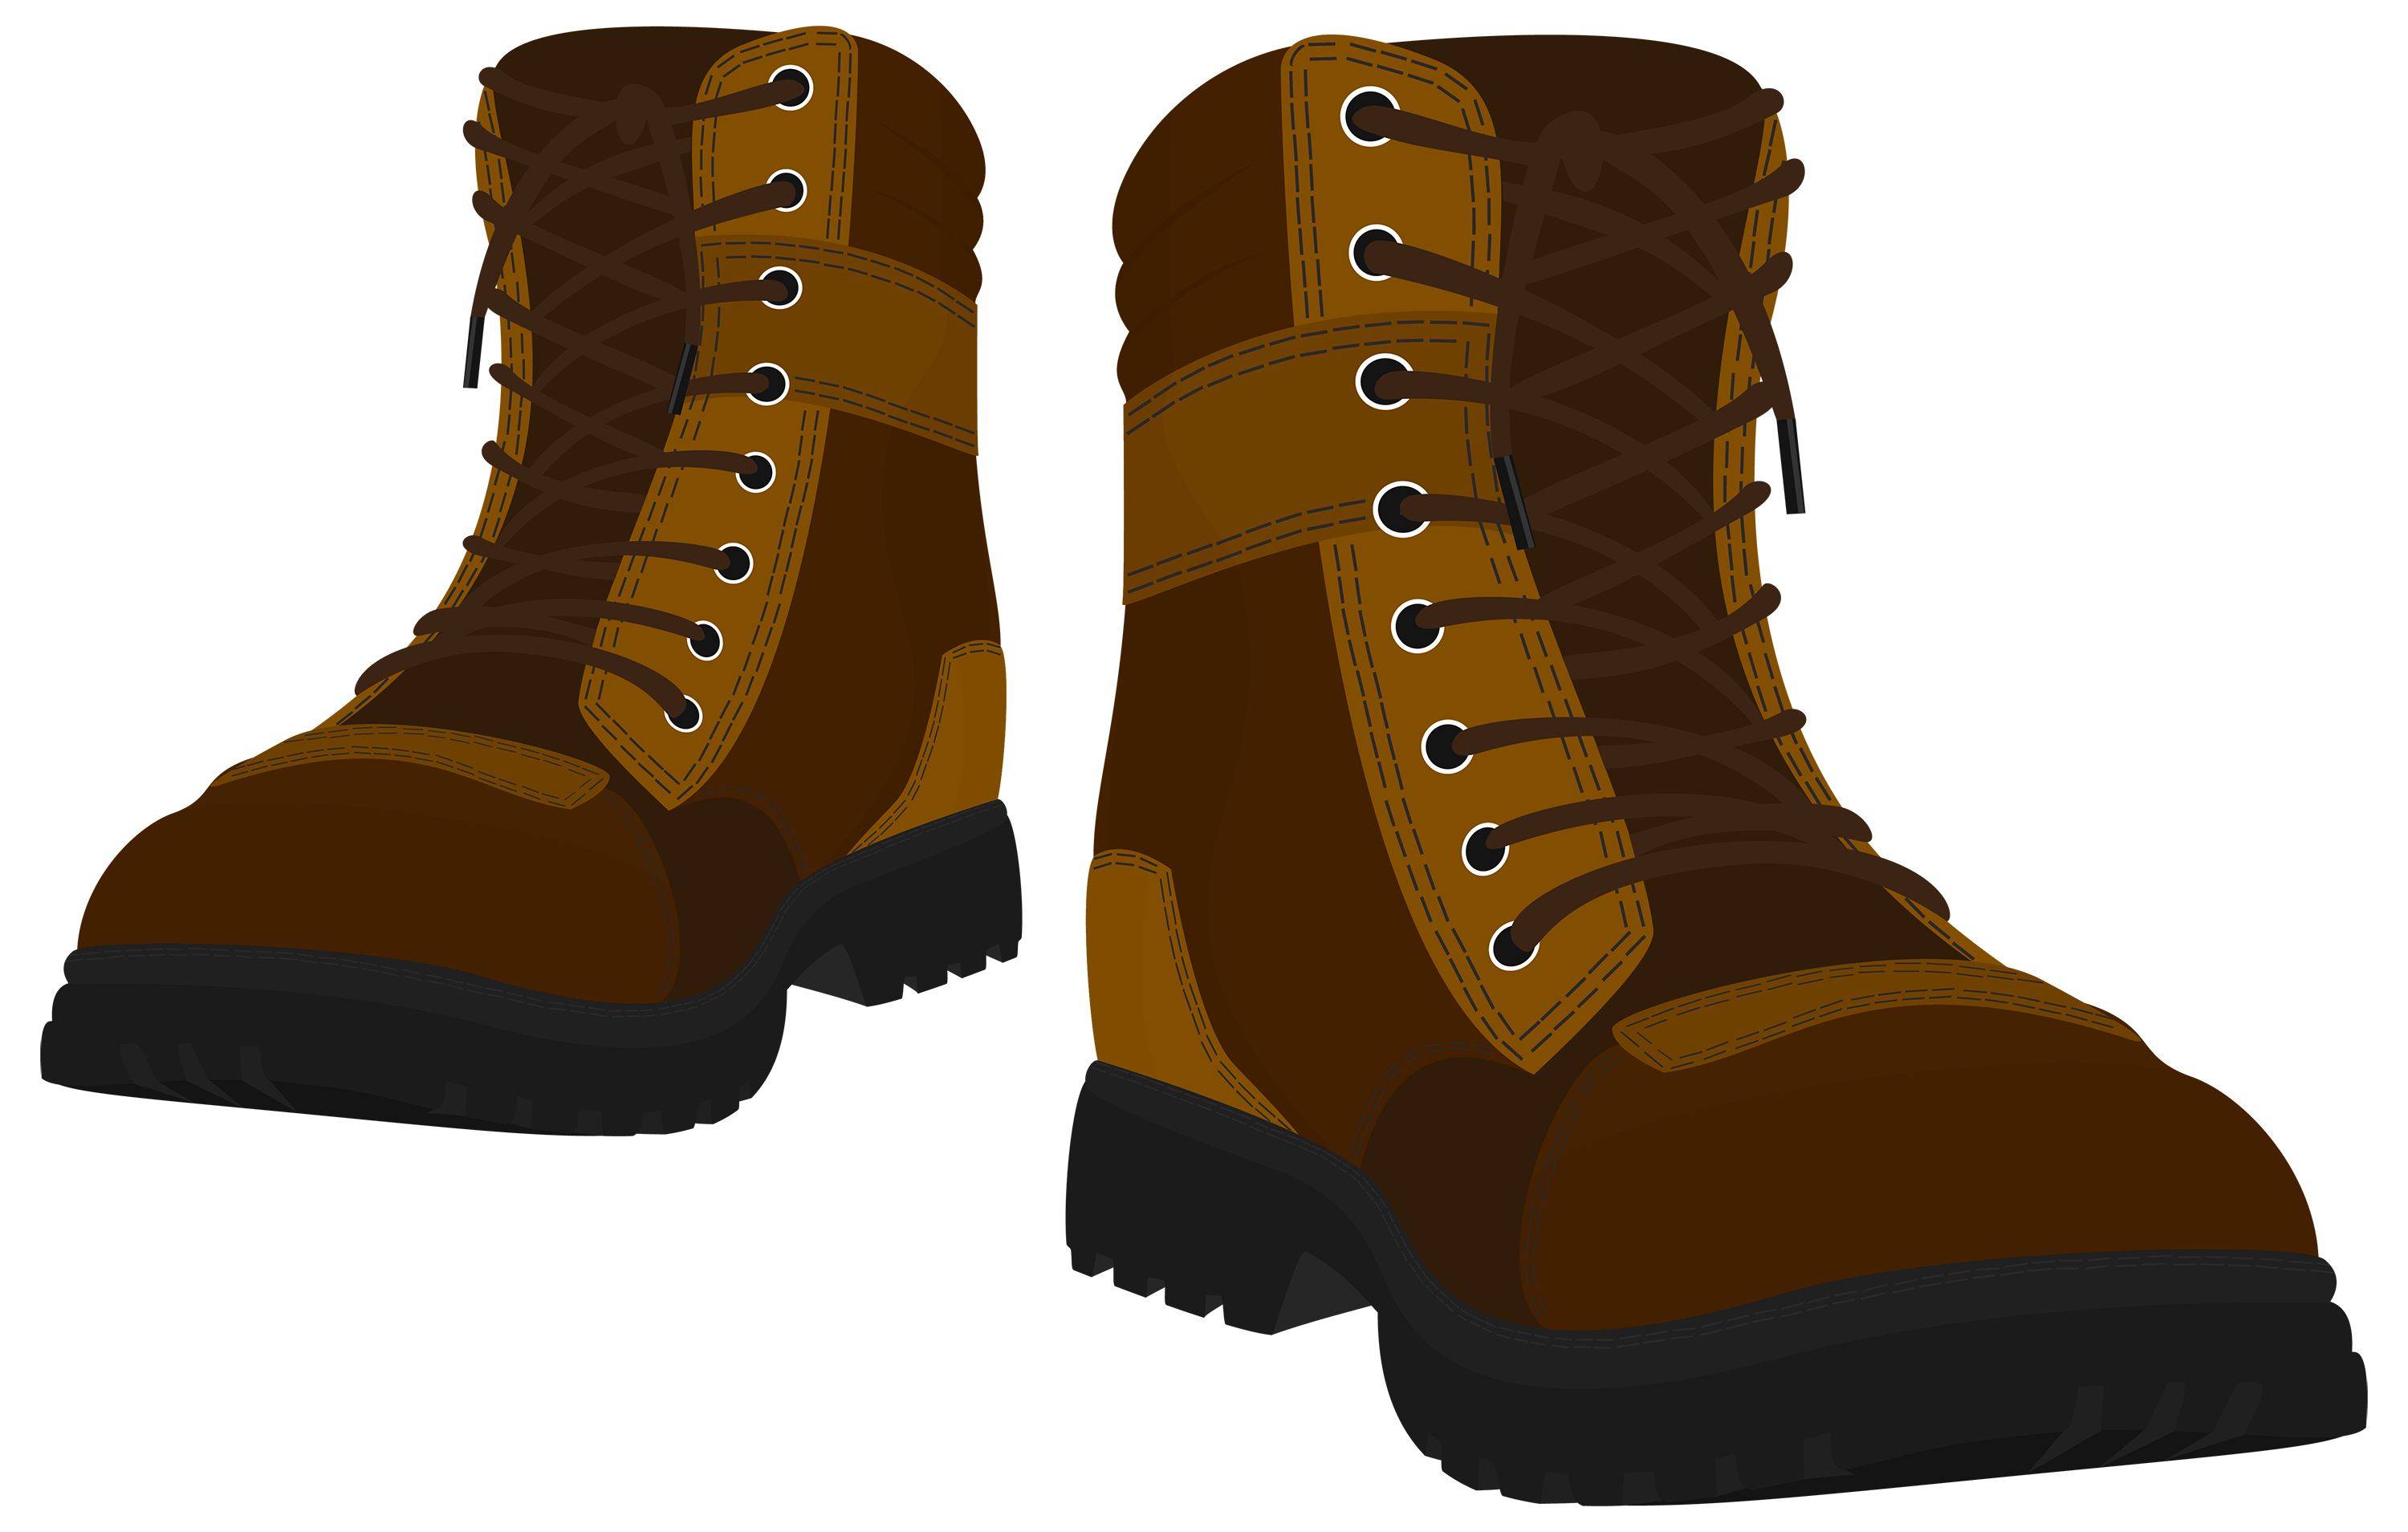 Clipart of boots image royalty free library Brown Male Boots PNG Clipart - Best WEB Clipart image royalty free library